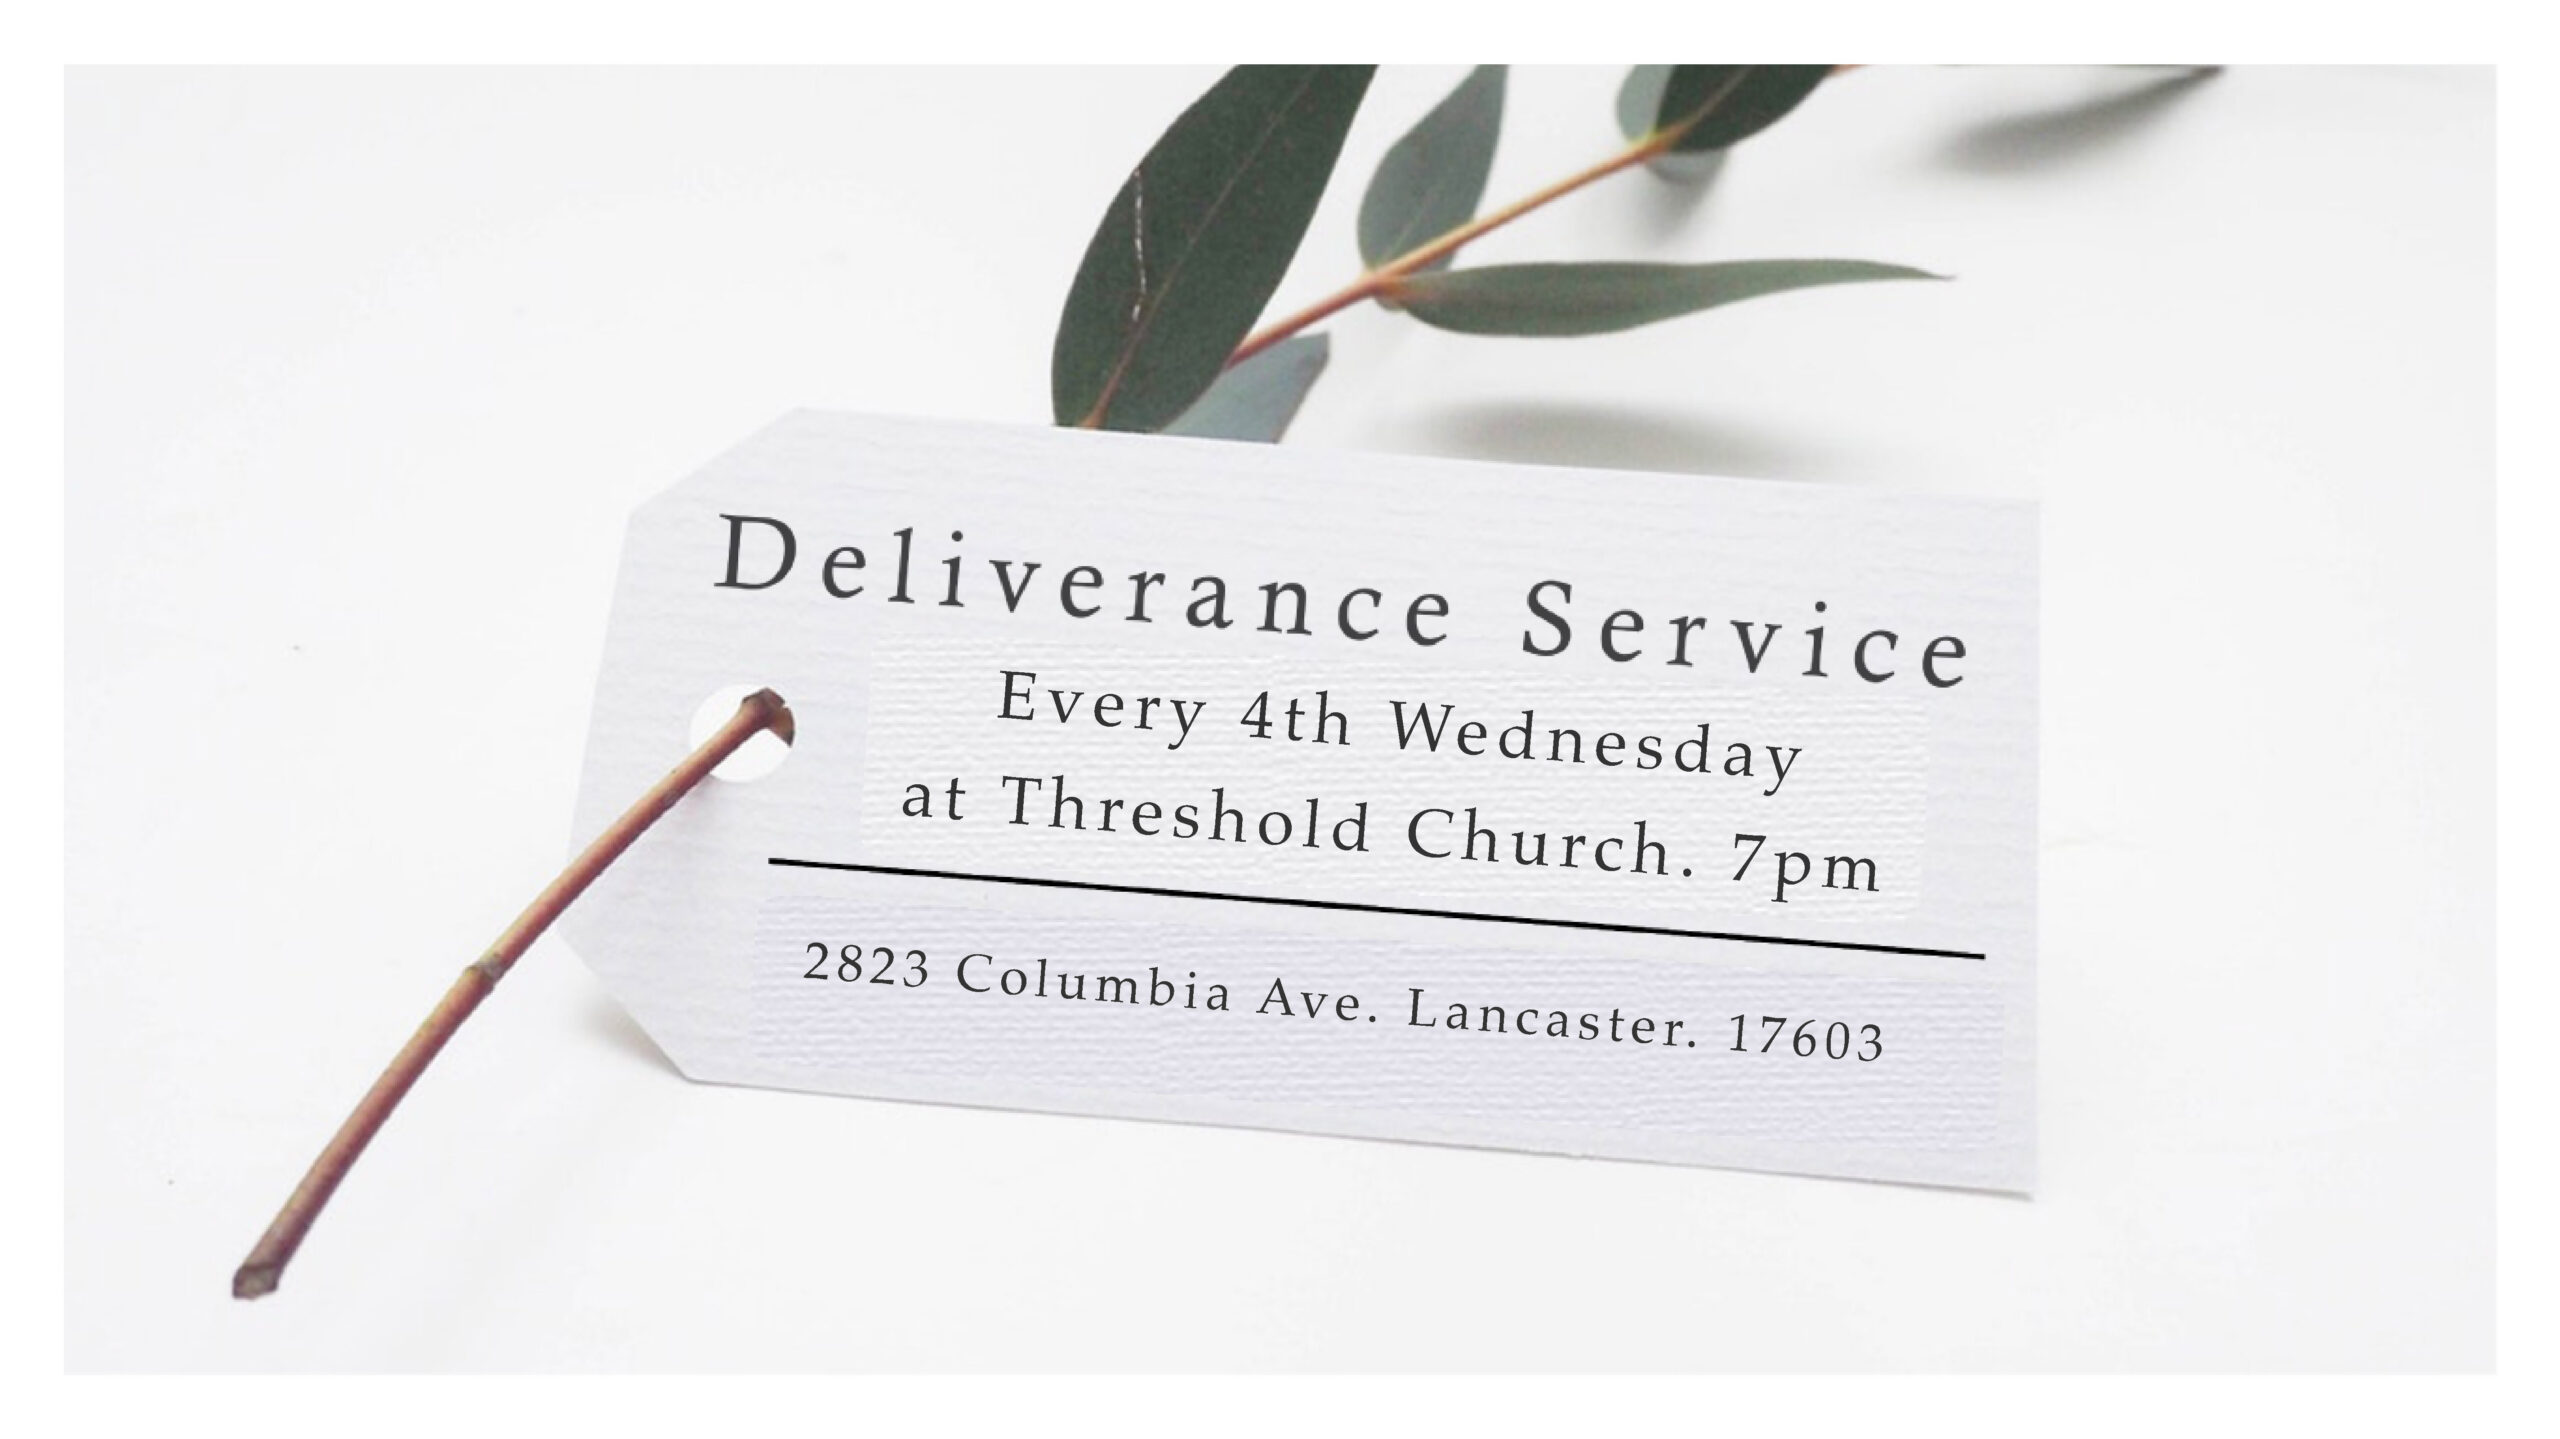 Monthly Deliverance Services – Every 4th Wednesday